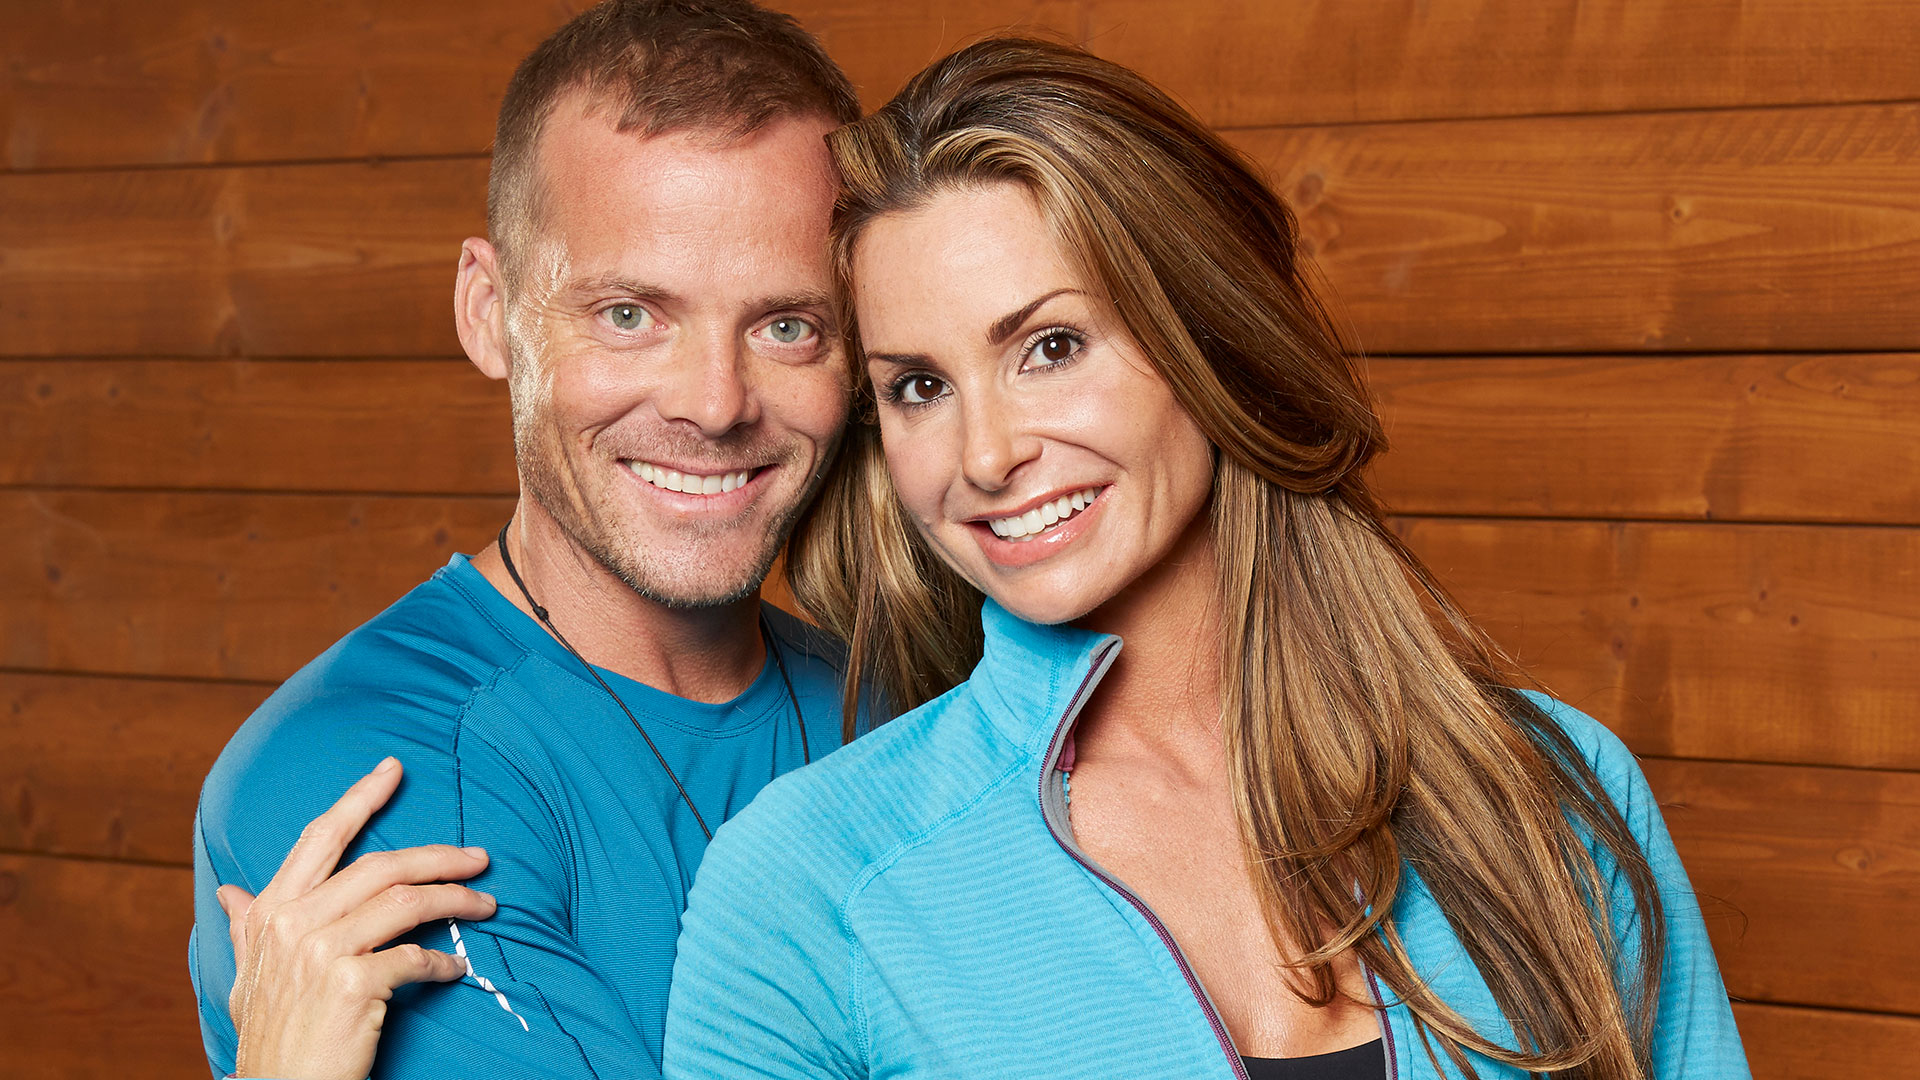 Colin Guinn and Christie Woods (Life Partners)